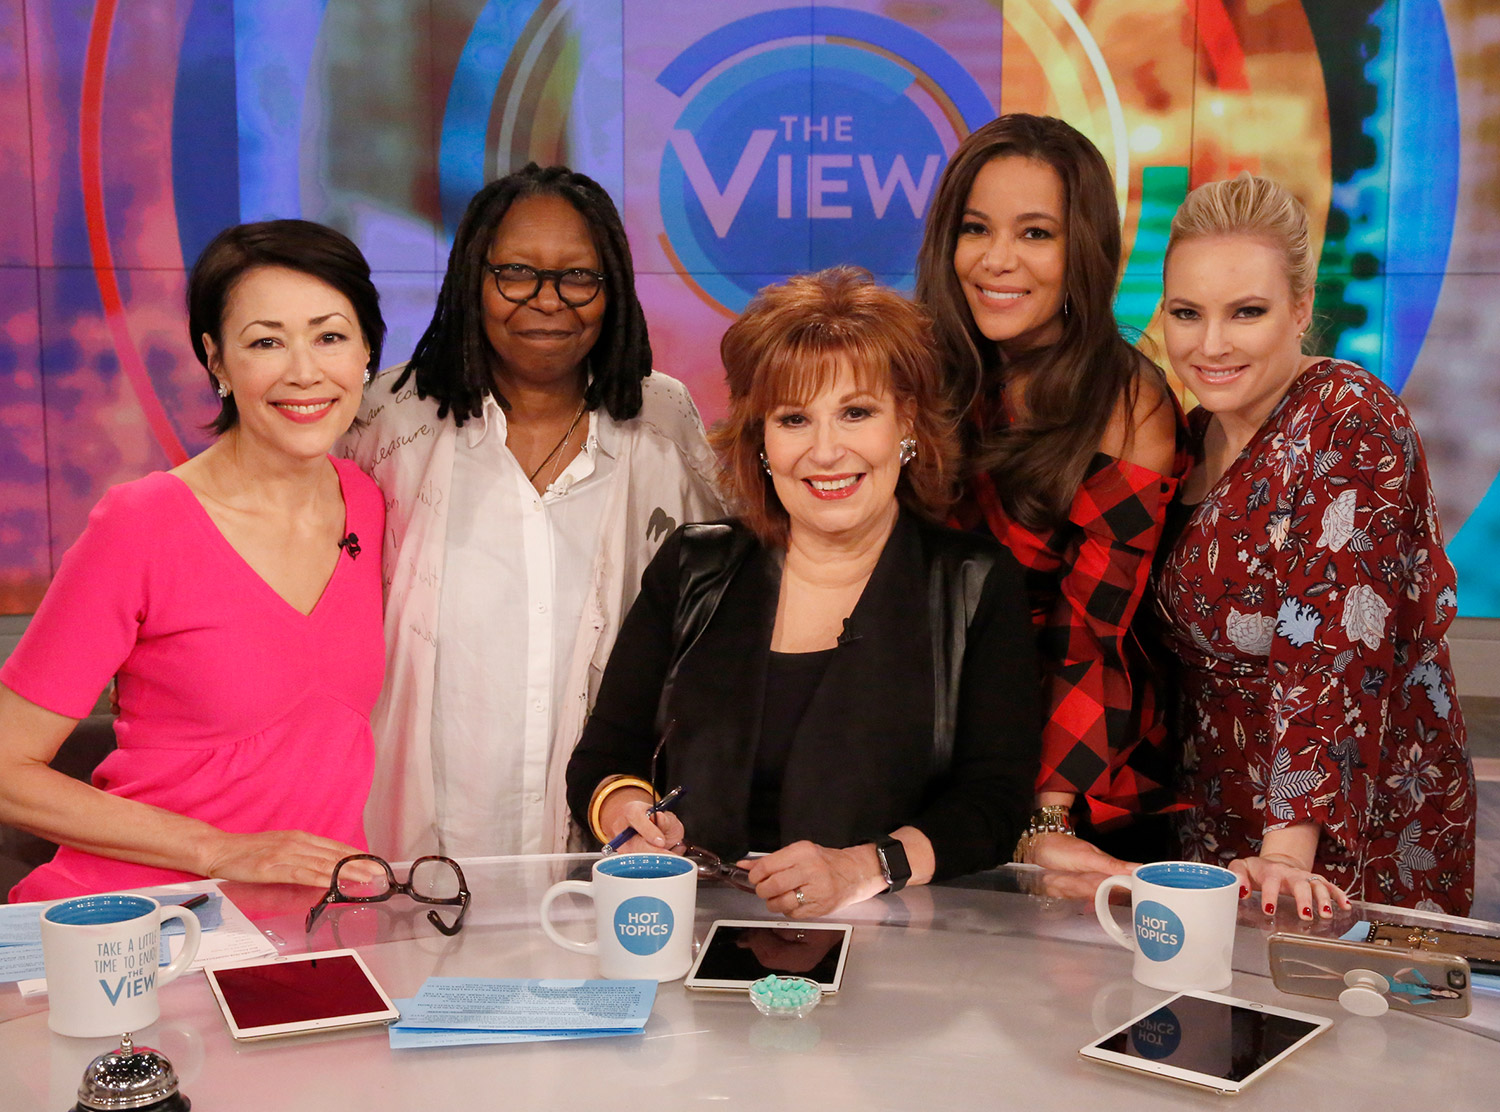 ANN CURRY, WHOOPI GOLDBERG, JOY BEHAR, SUNNY HOSTIN, MEGHAN MCCAIN